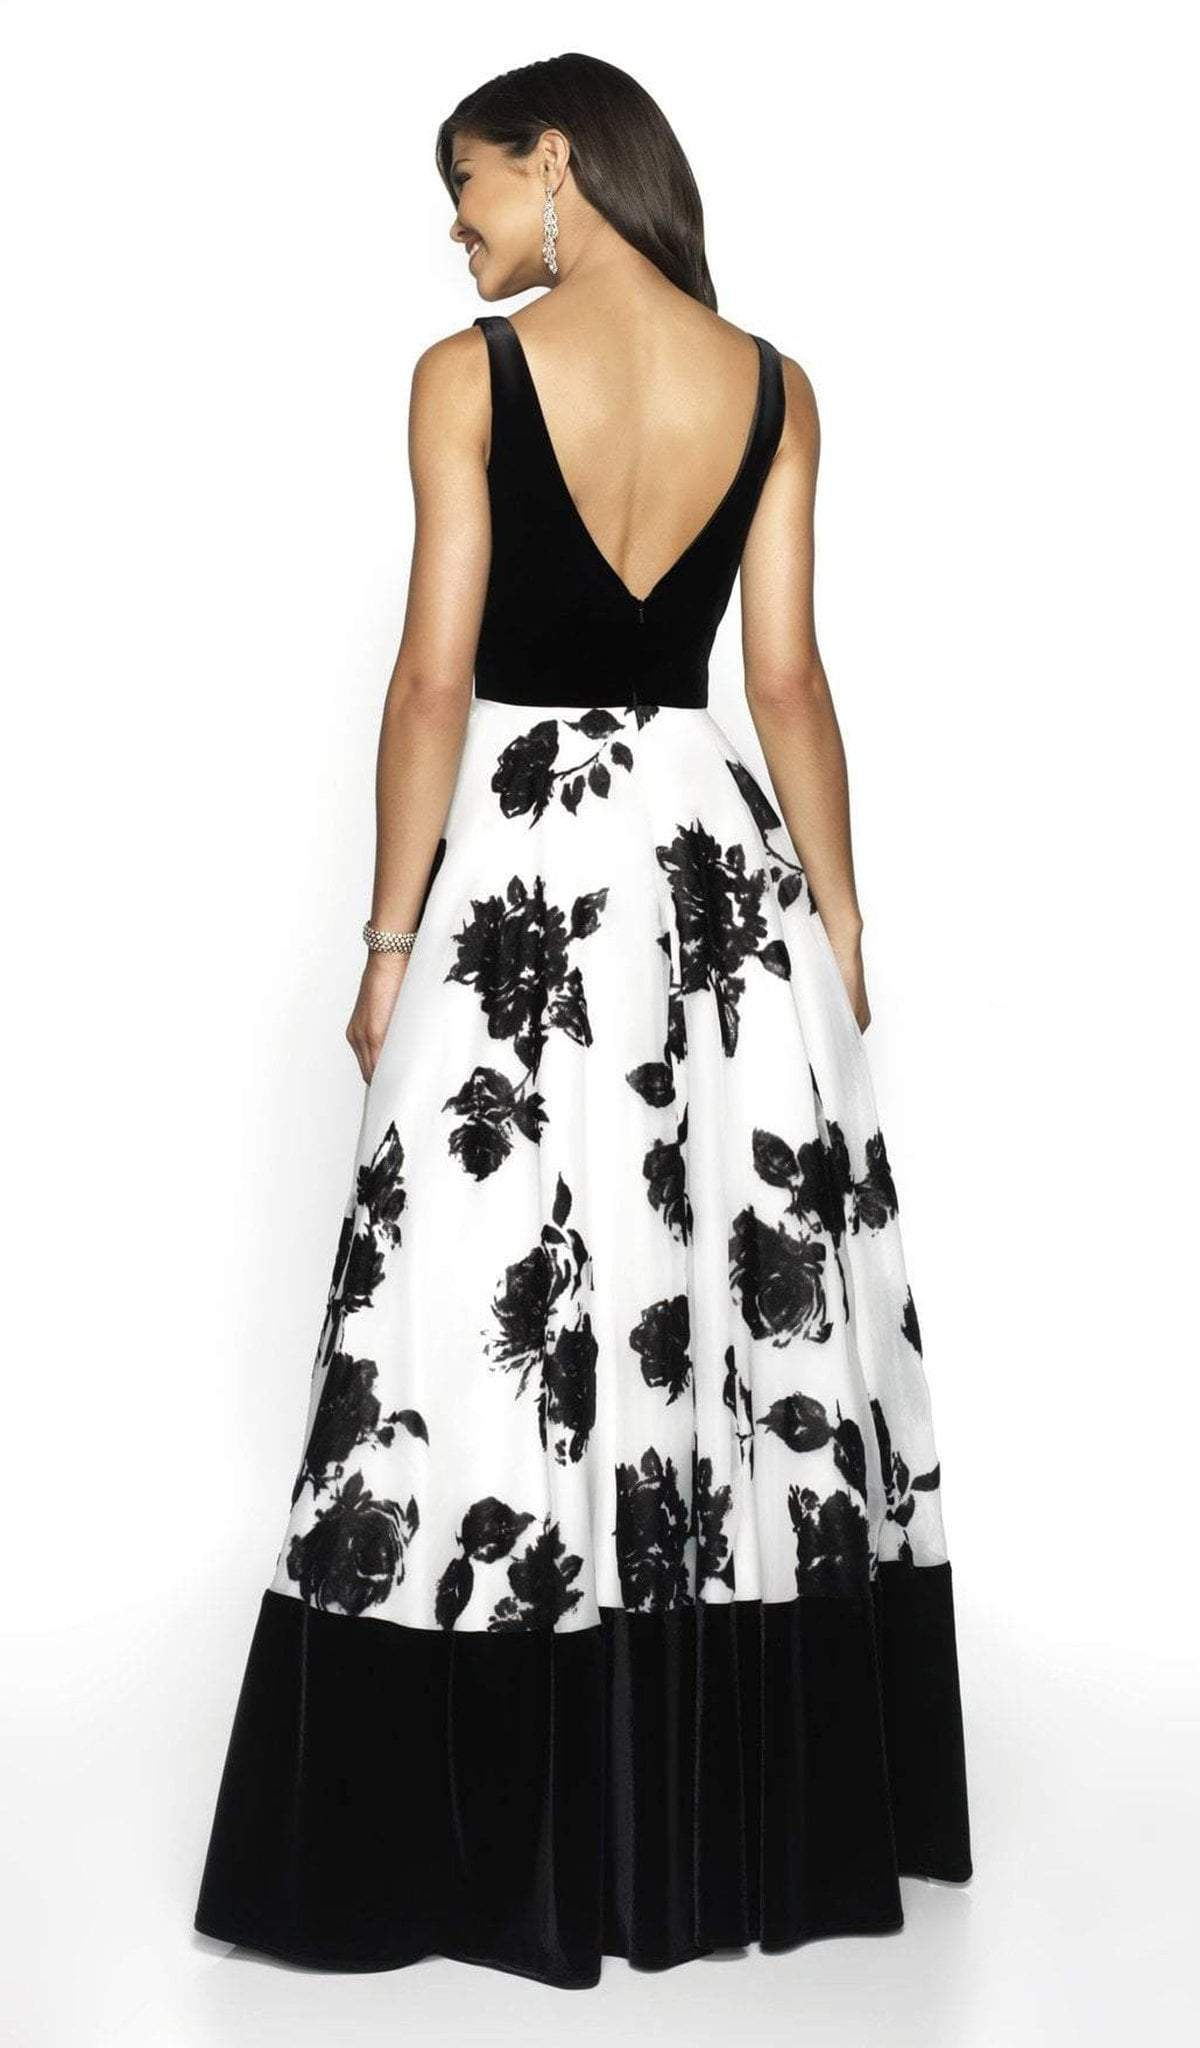 Blush by Alexia Designs - 5725 V-Neck Floral A-Line Dress In White and Black